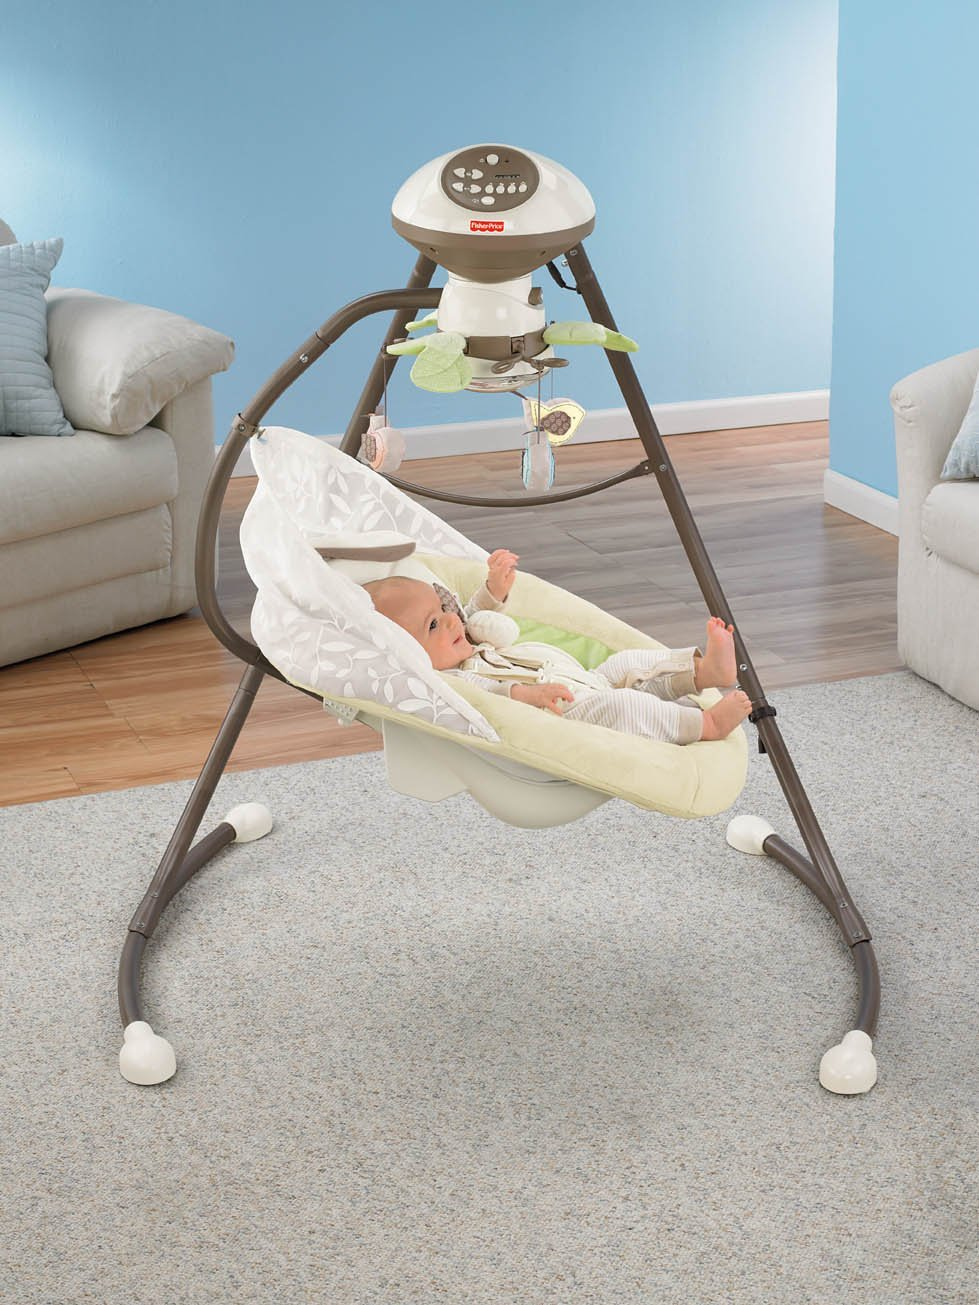 With Smart Swing Technology Fisher-Price Snugabunny Cradle N Swing